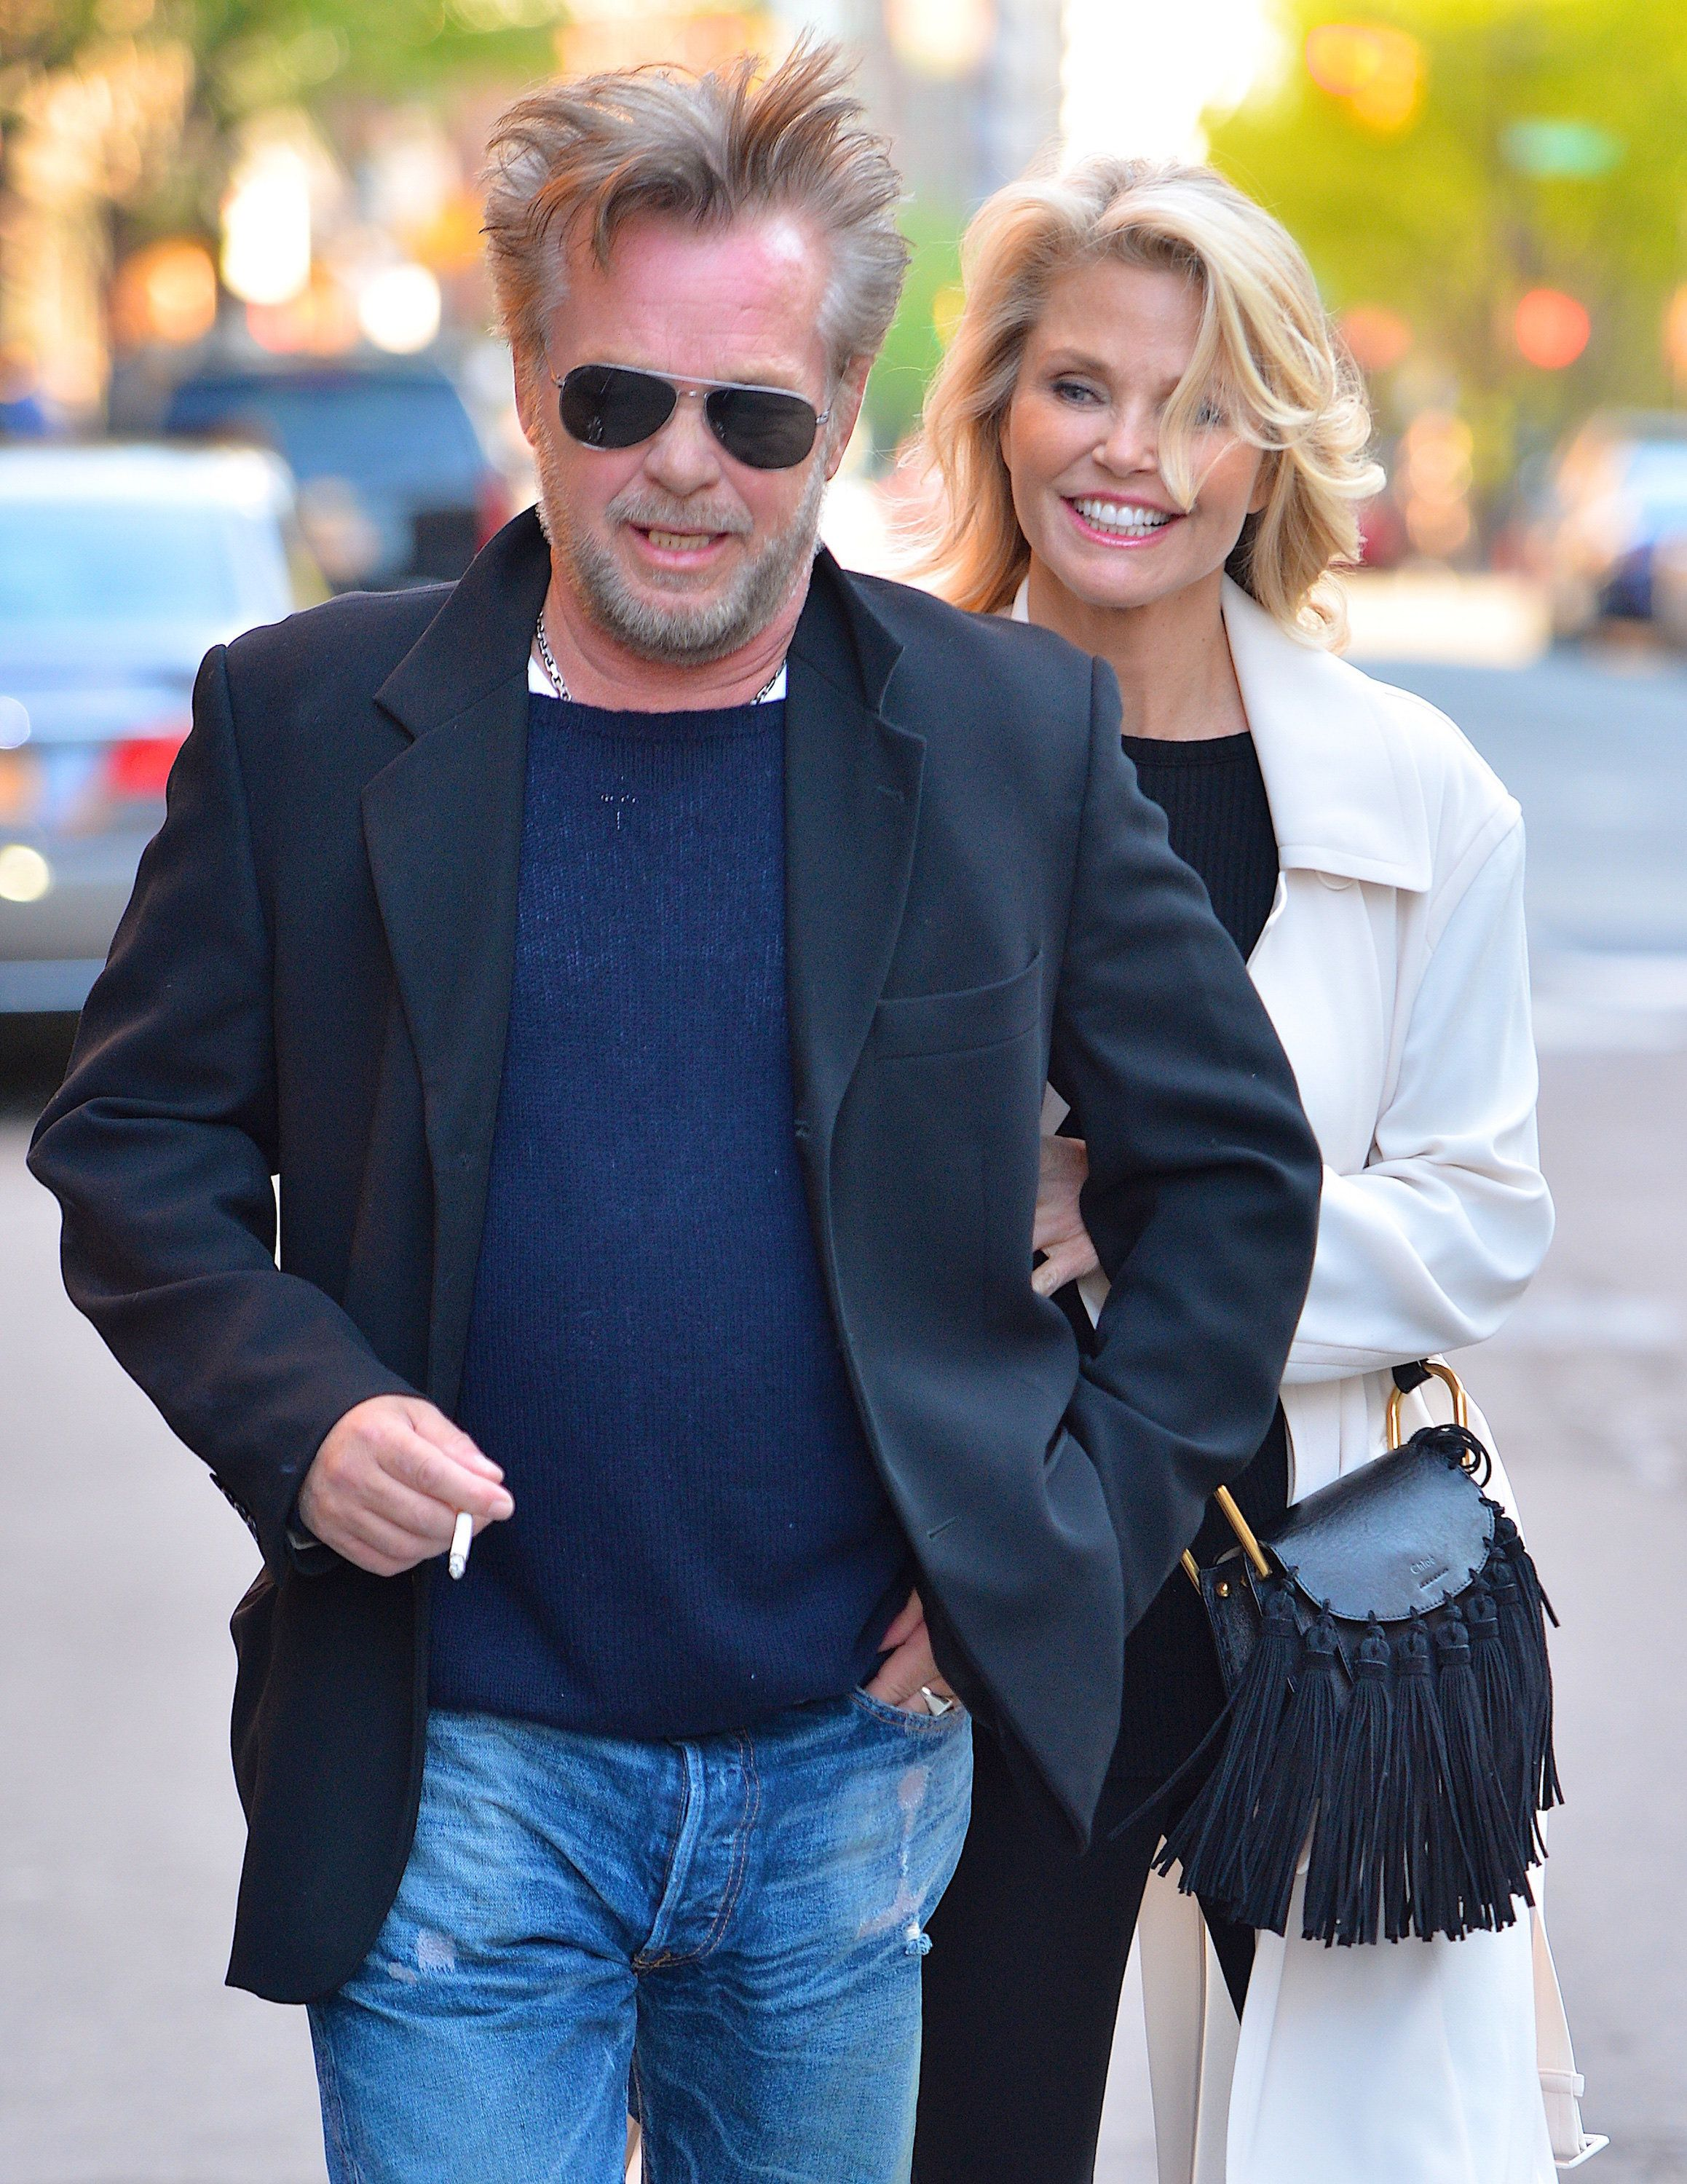 Mellencamp and Brinkley take a stroll in New York City in April 2016.